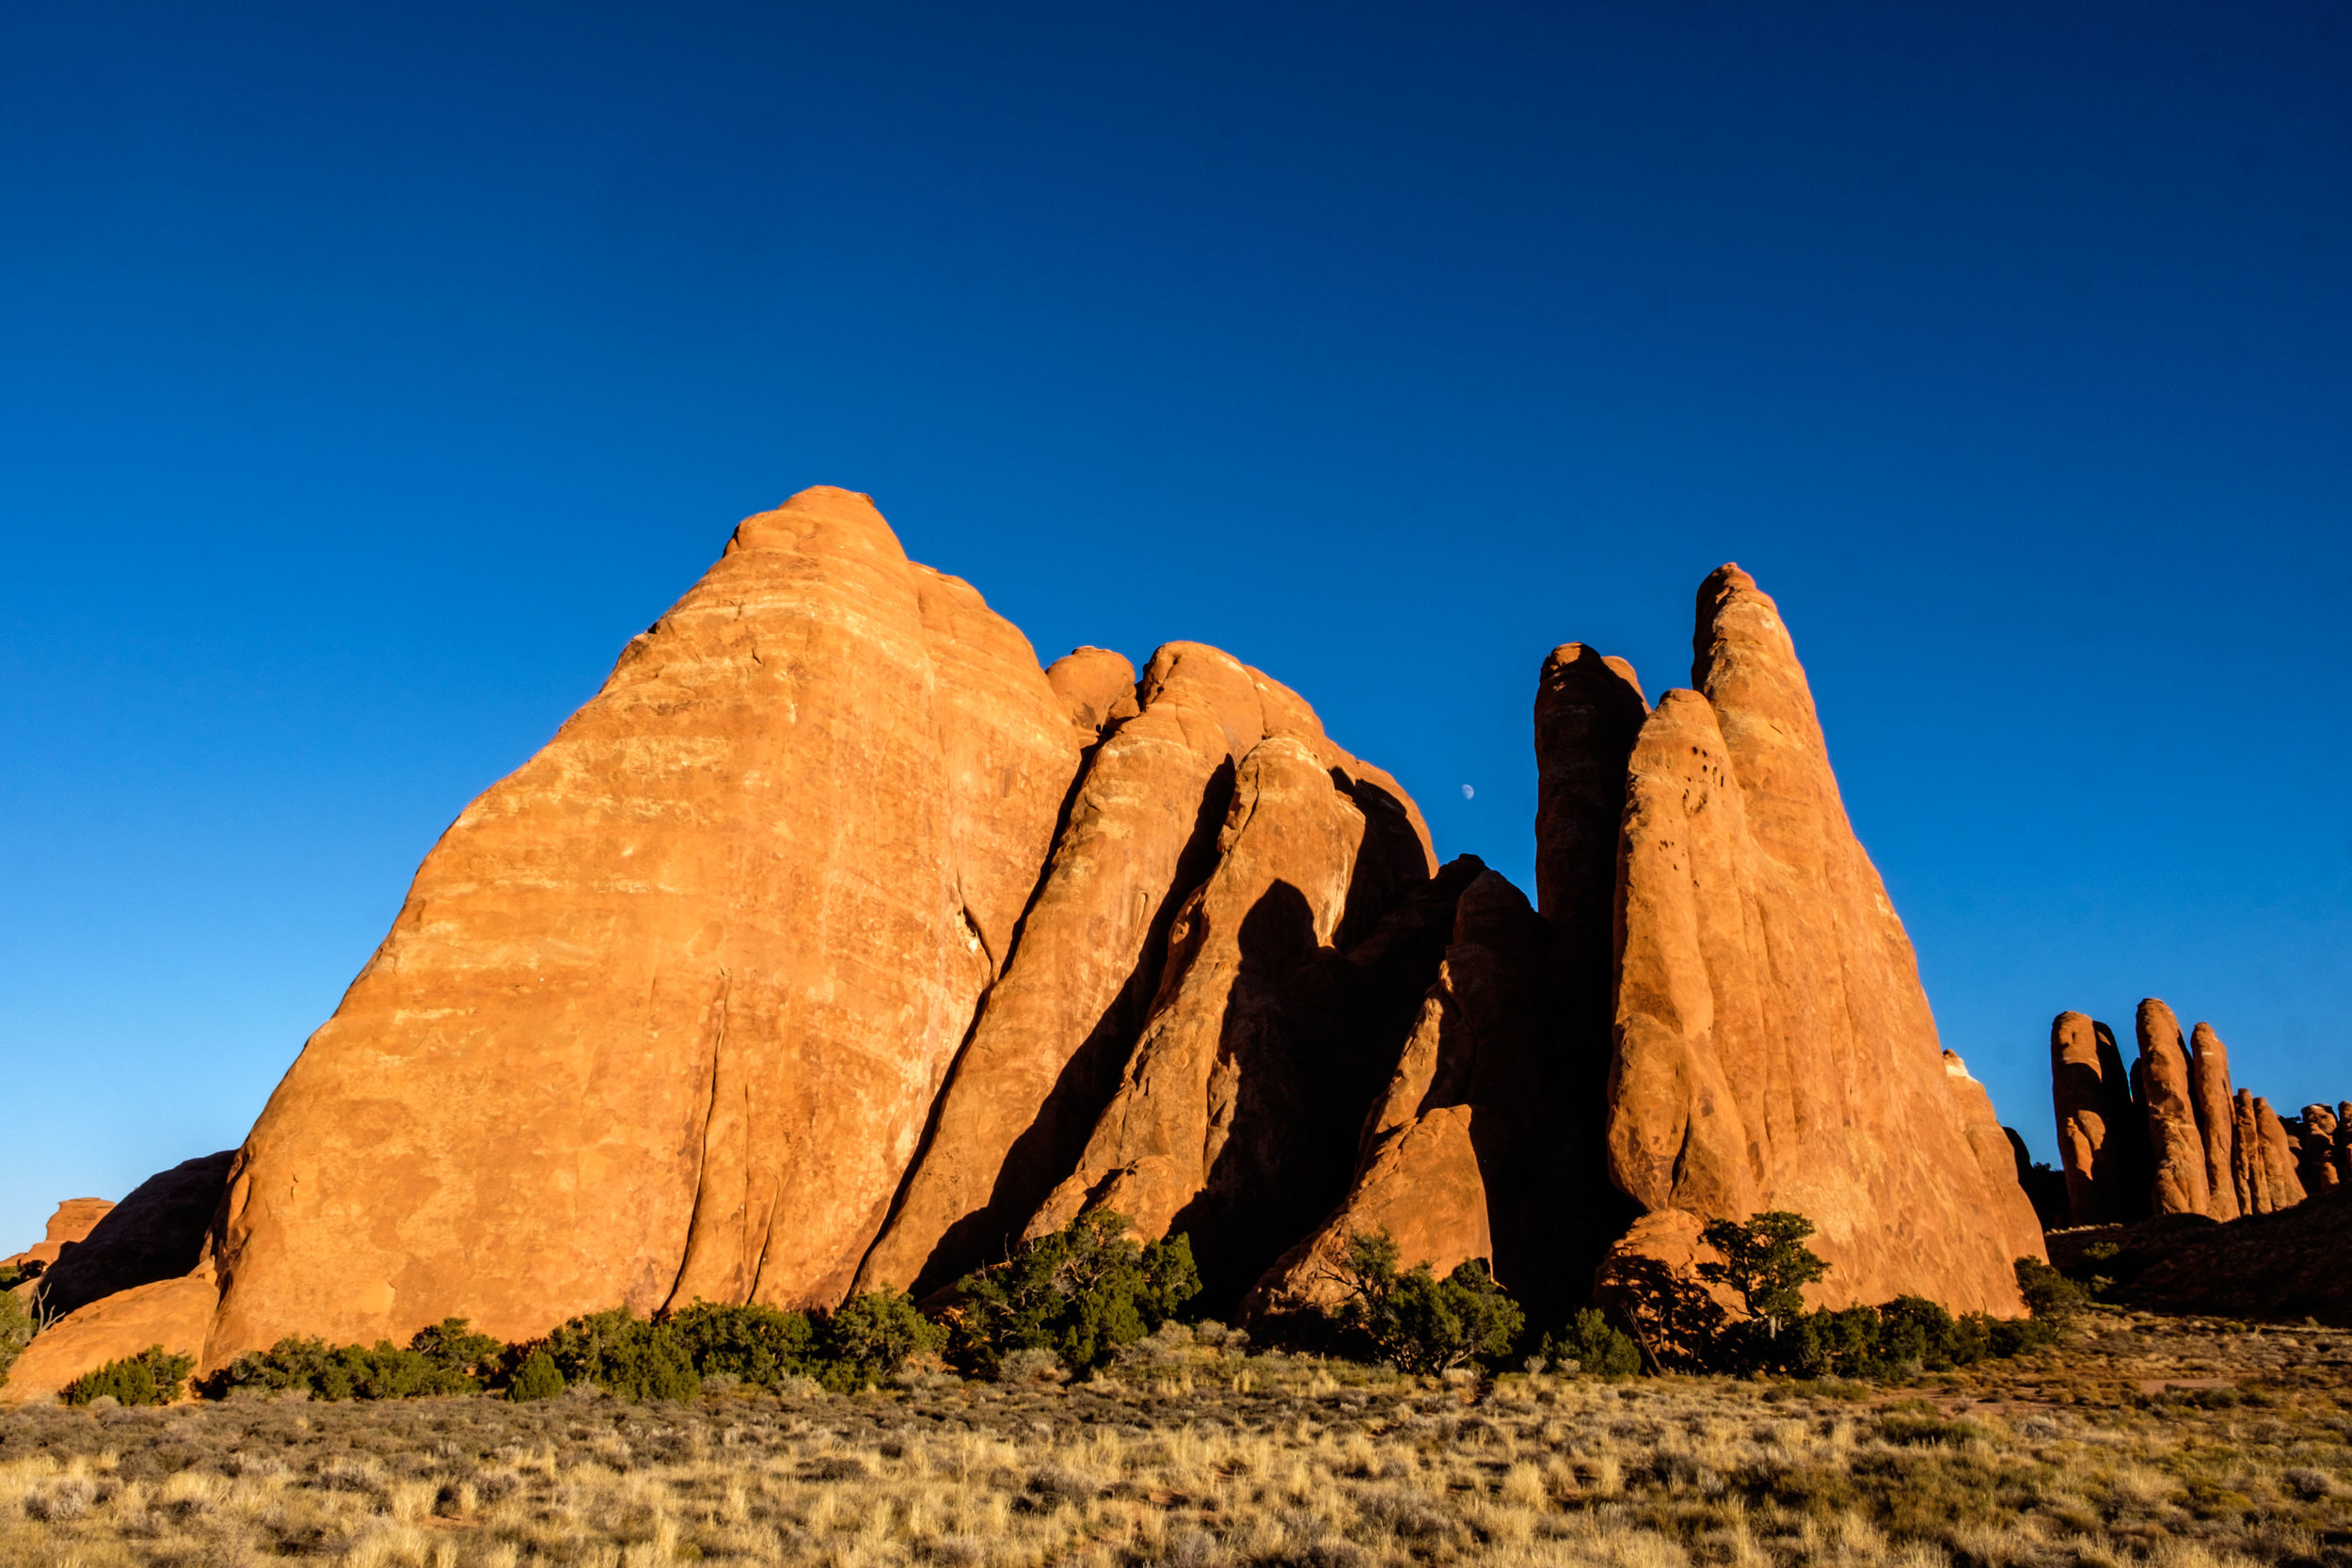 Fins of sandstone near Sand Dune Arch.